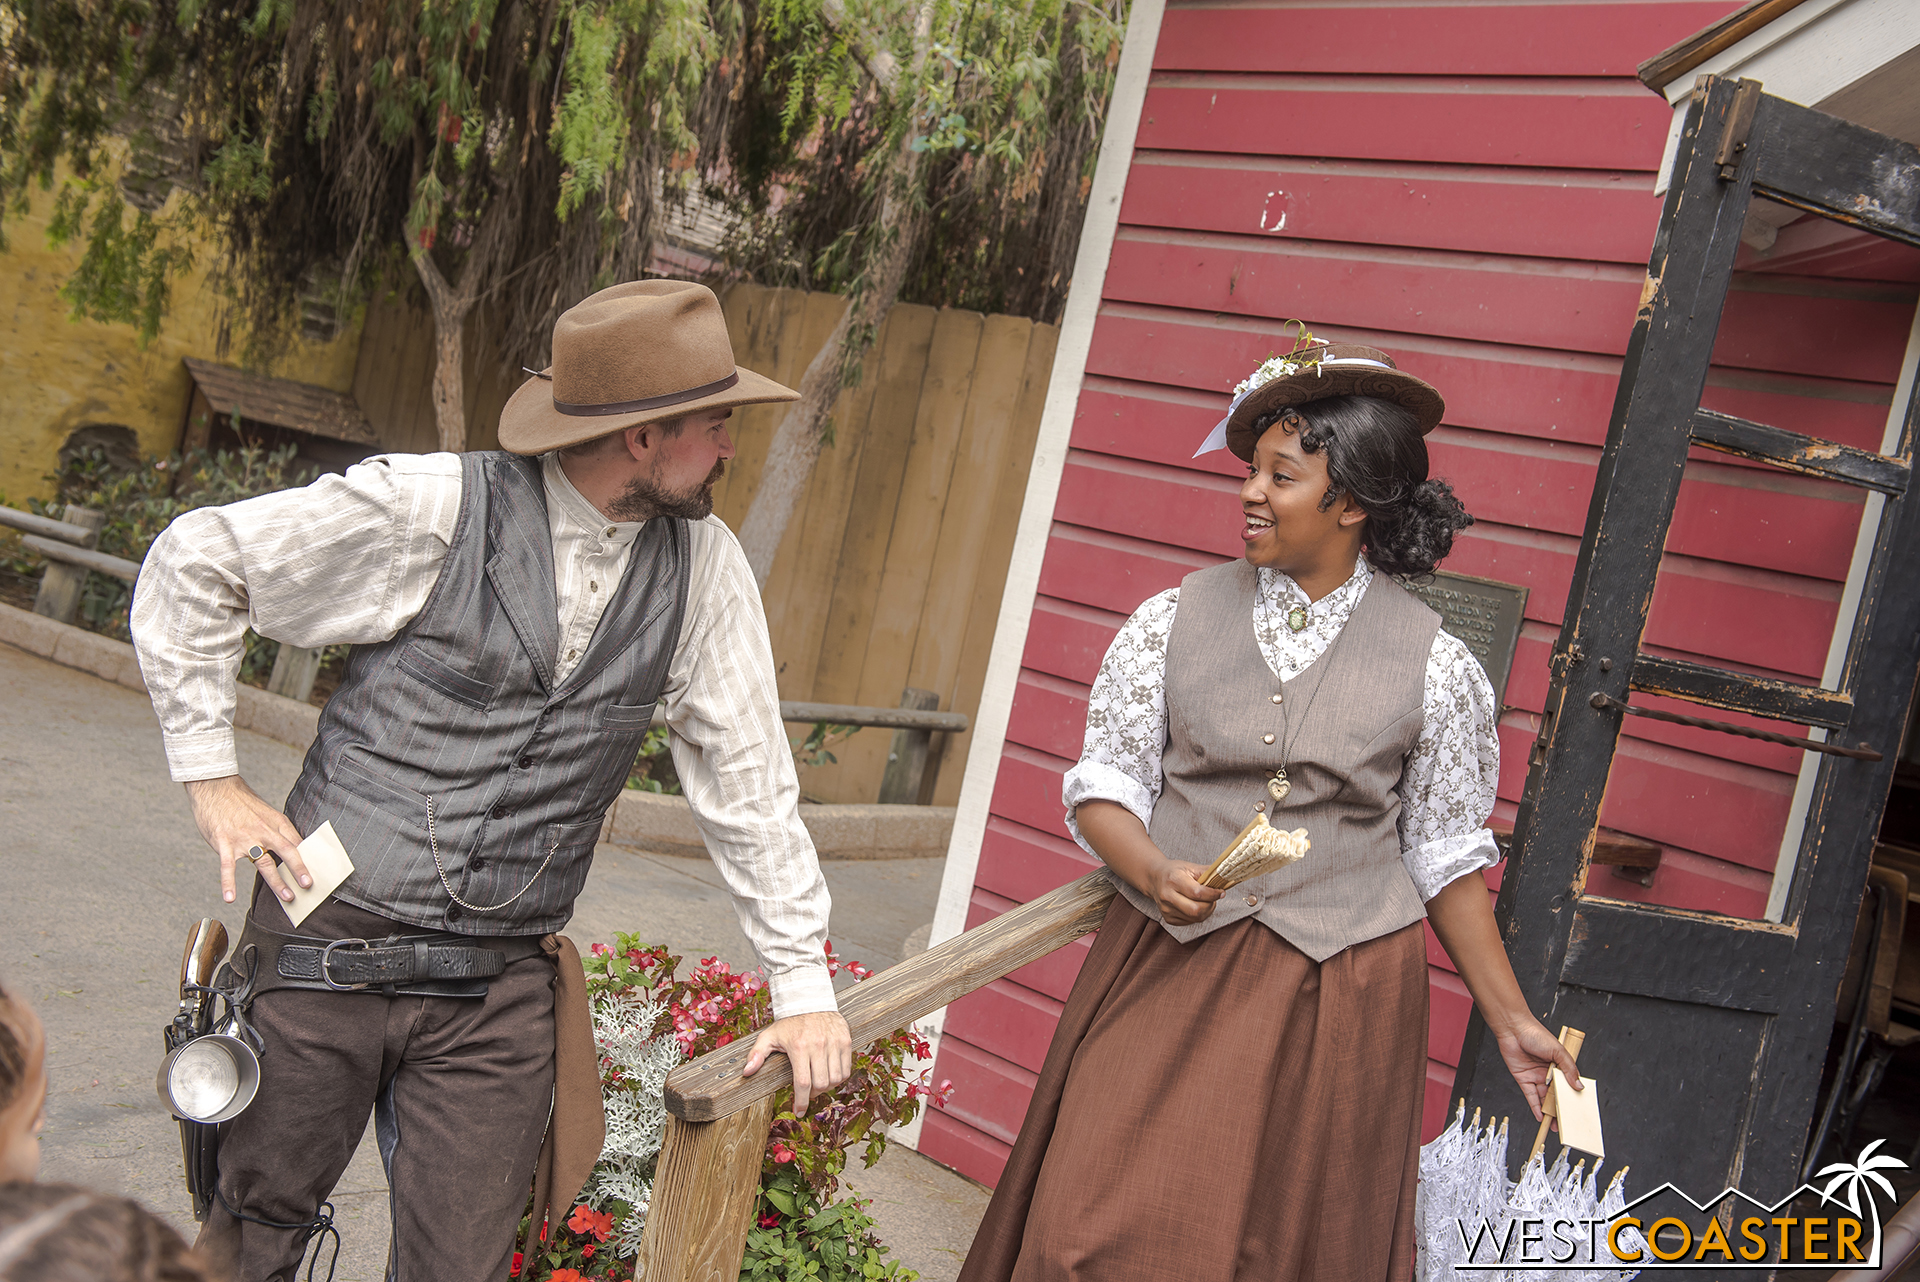 """In a parallel storyline, """"No Name"""" Cunningham  woos Miss Marybelle to be his date to the hoedown later in the afternoon."""